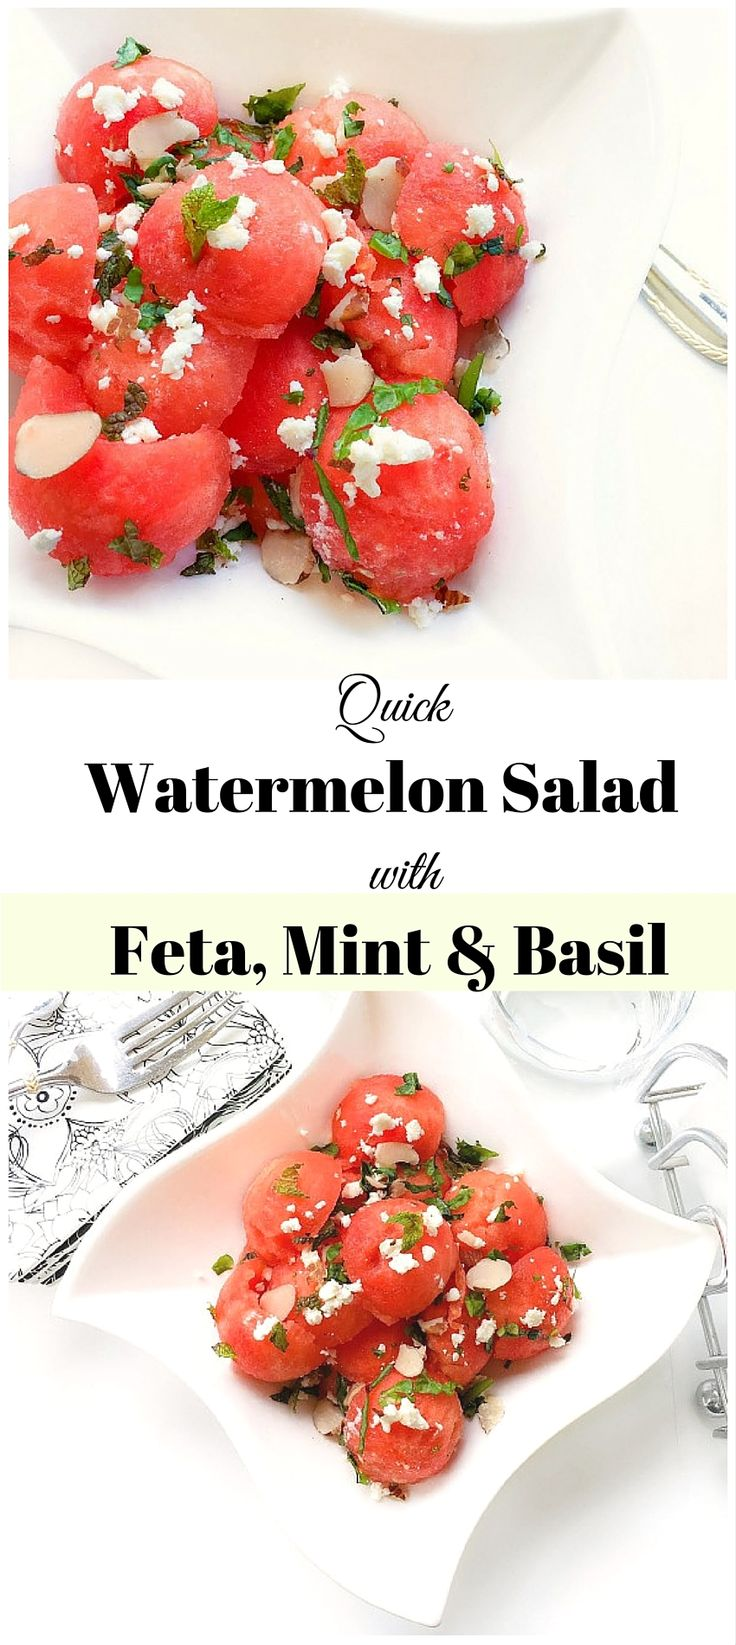 ... Watermelon Salad with Feta Mint and Basil : #watermelon #salad